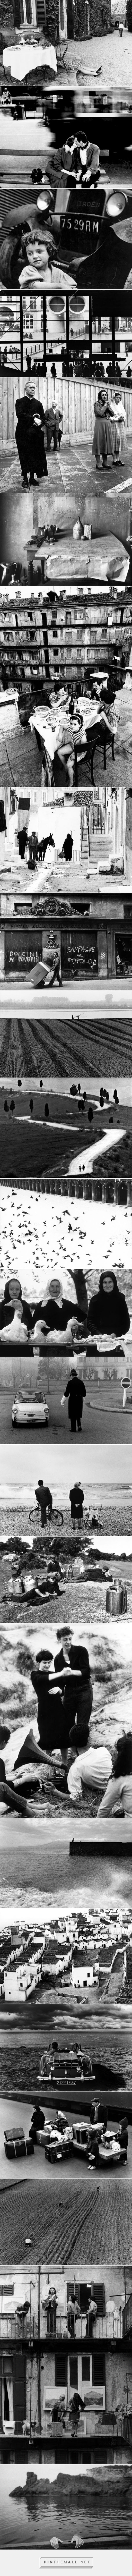 Shooting Film: 25 Breathtaking Black and White Photos of Italy Taken by Gianni Berengo Gardin in the 1960s... - a grouped images picture - Pin Them All